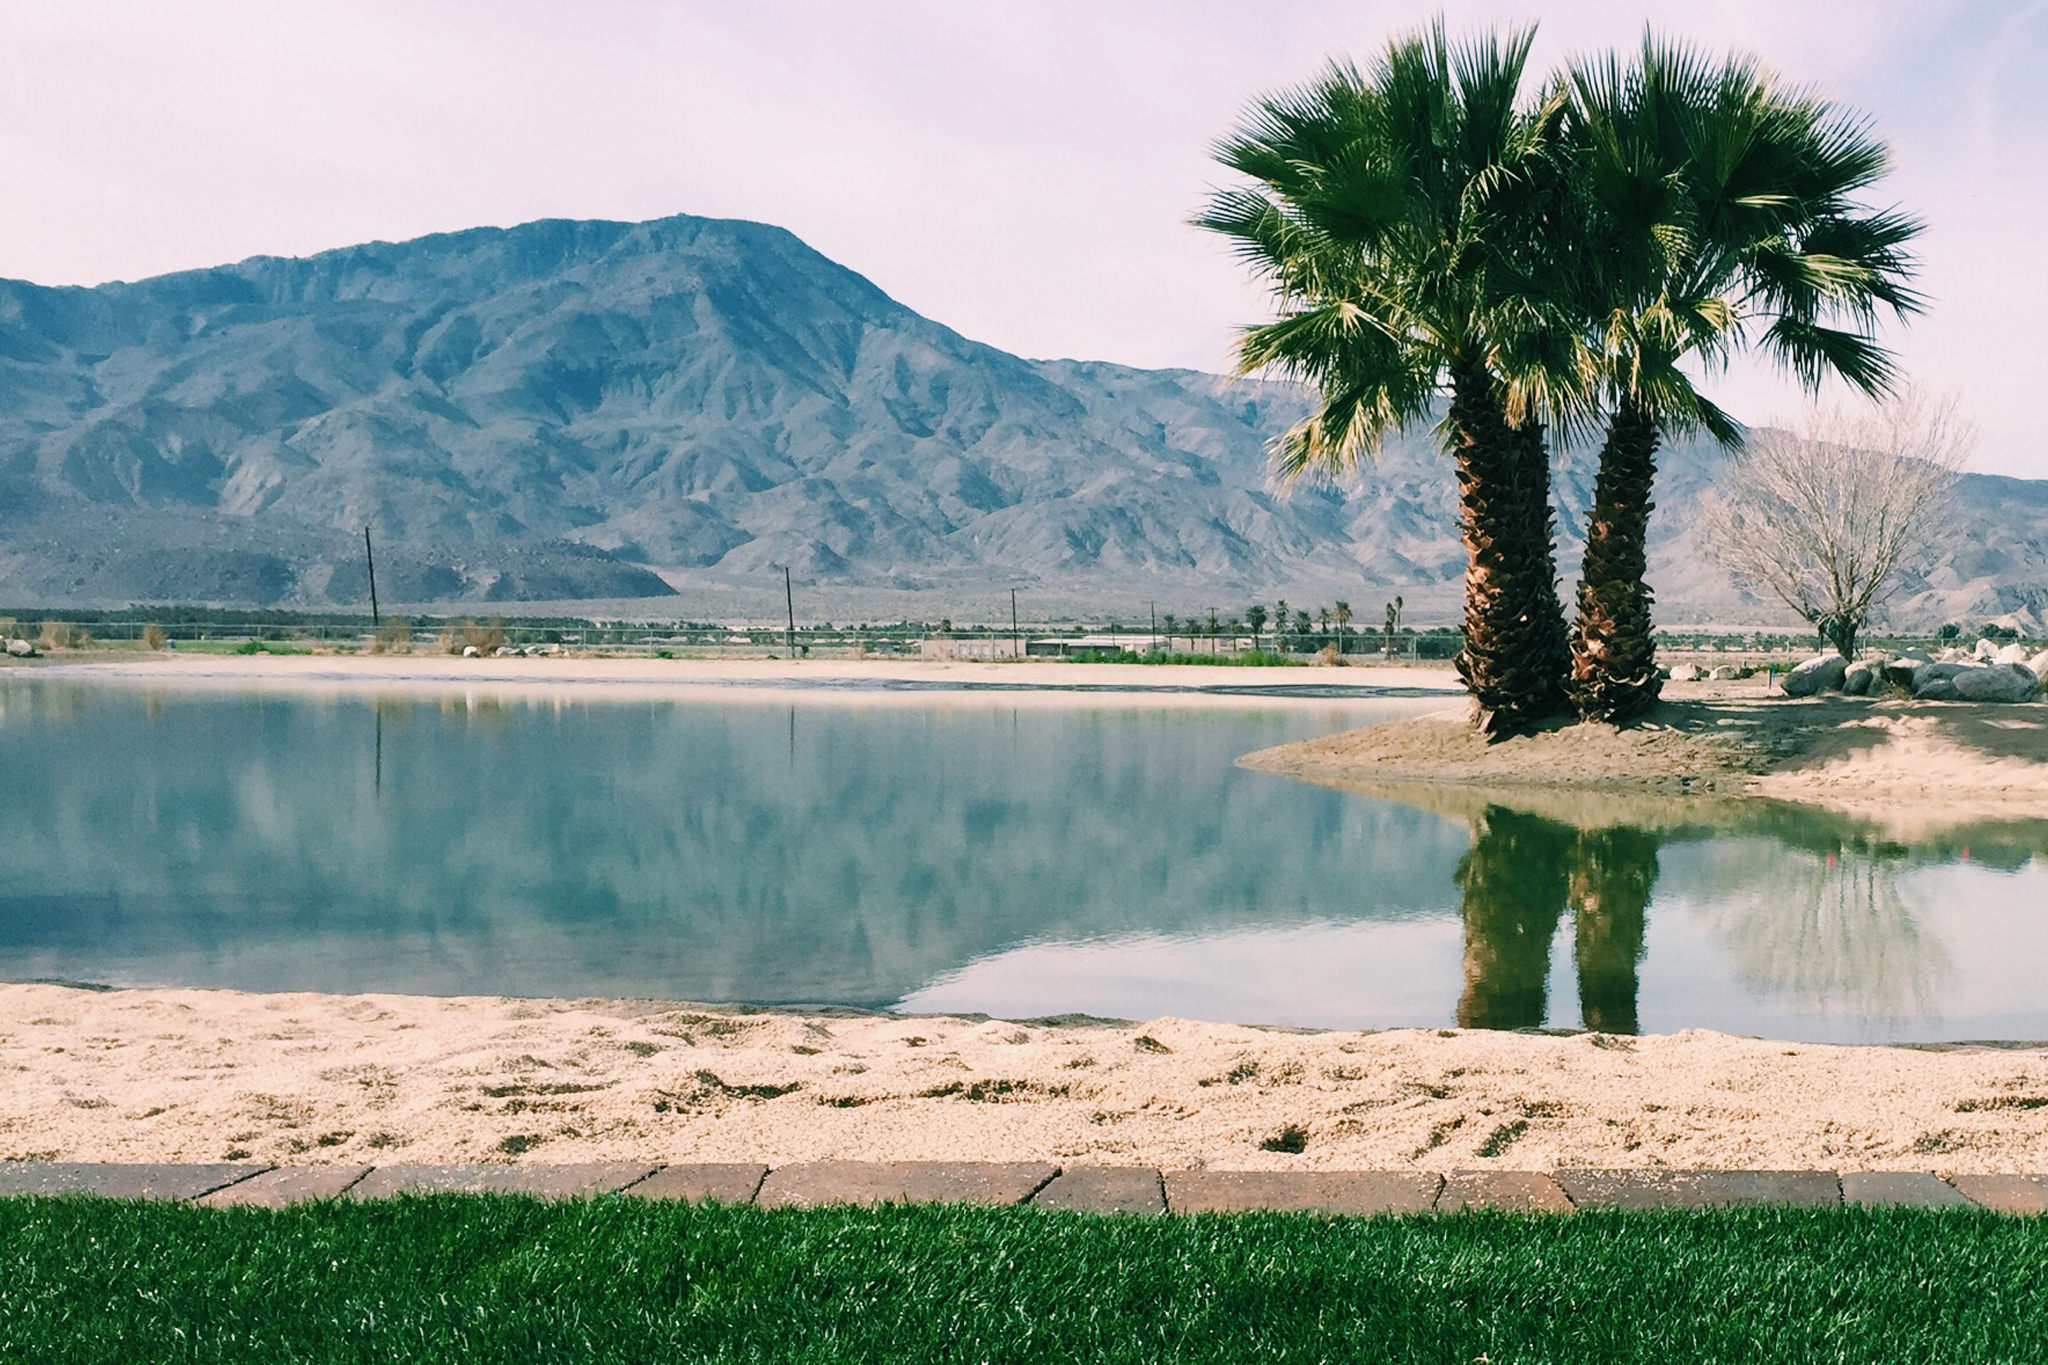 Need a place to stay during Coachella? Check out this new Base Camp (and get a 10% discount)